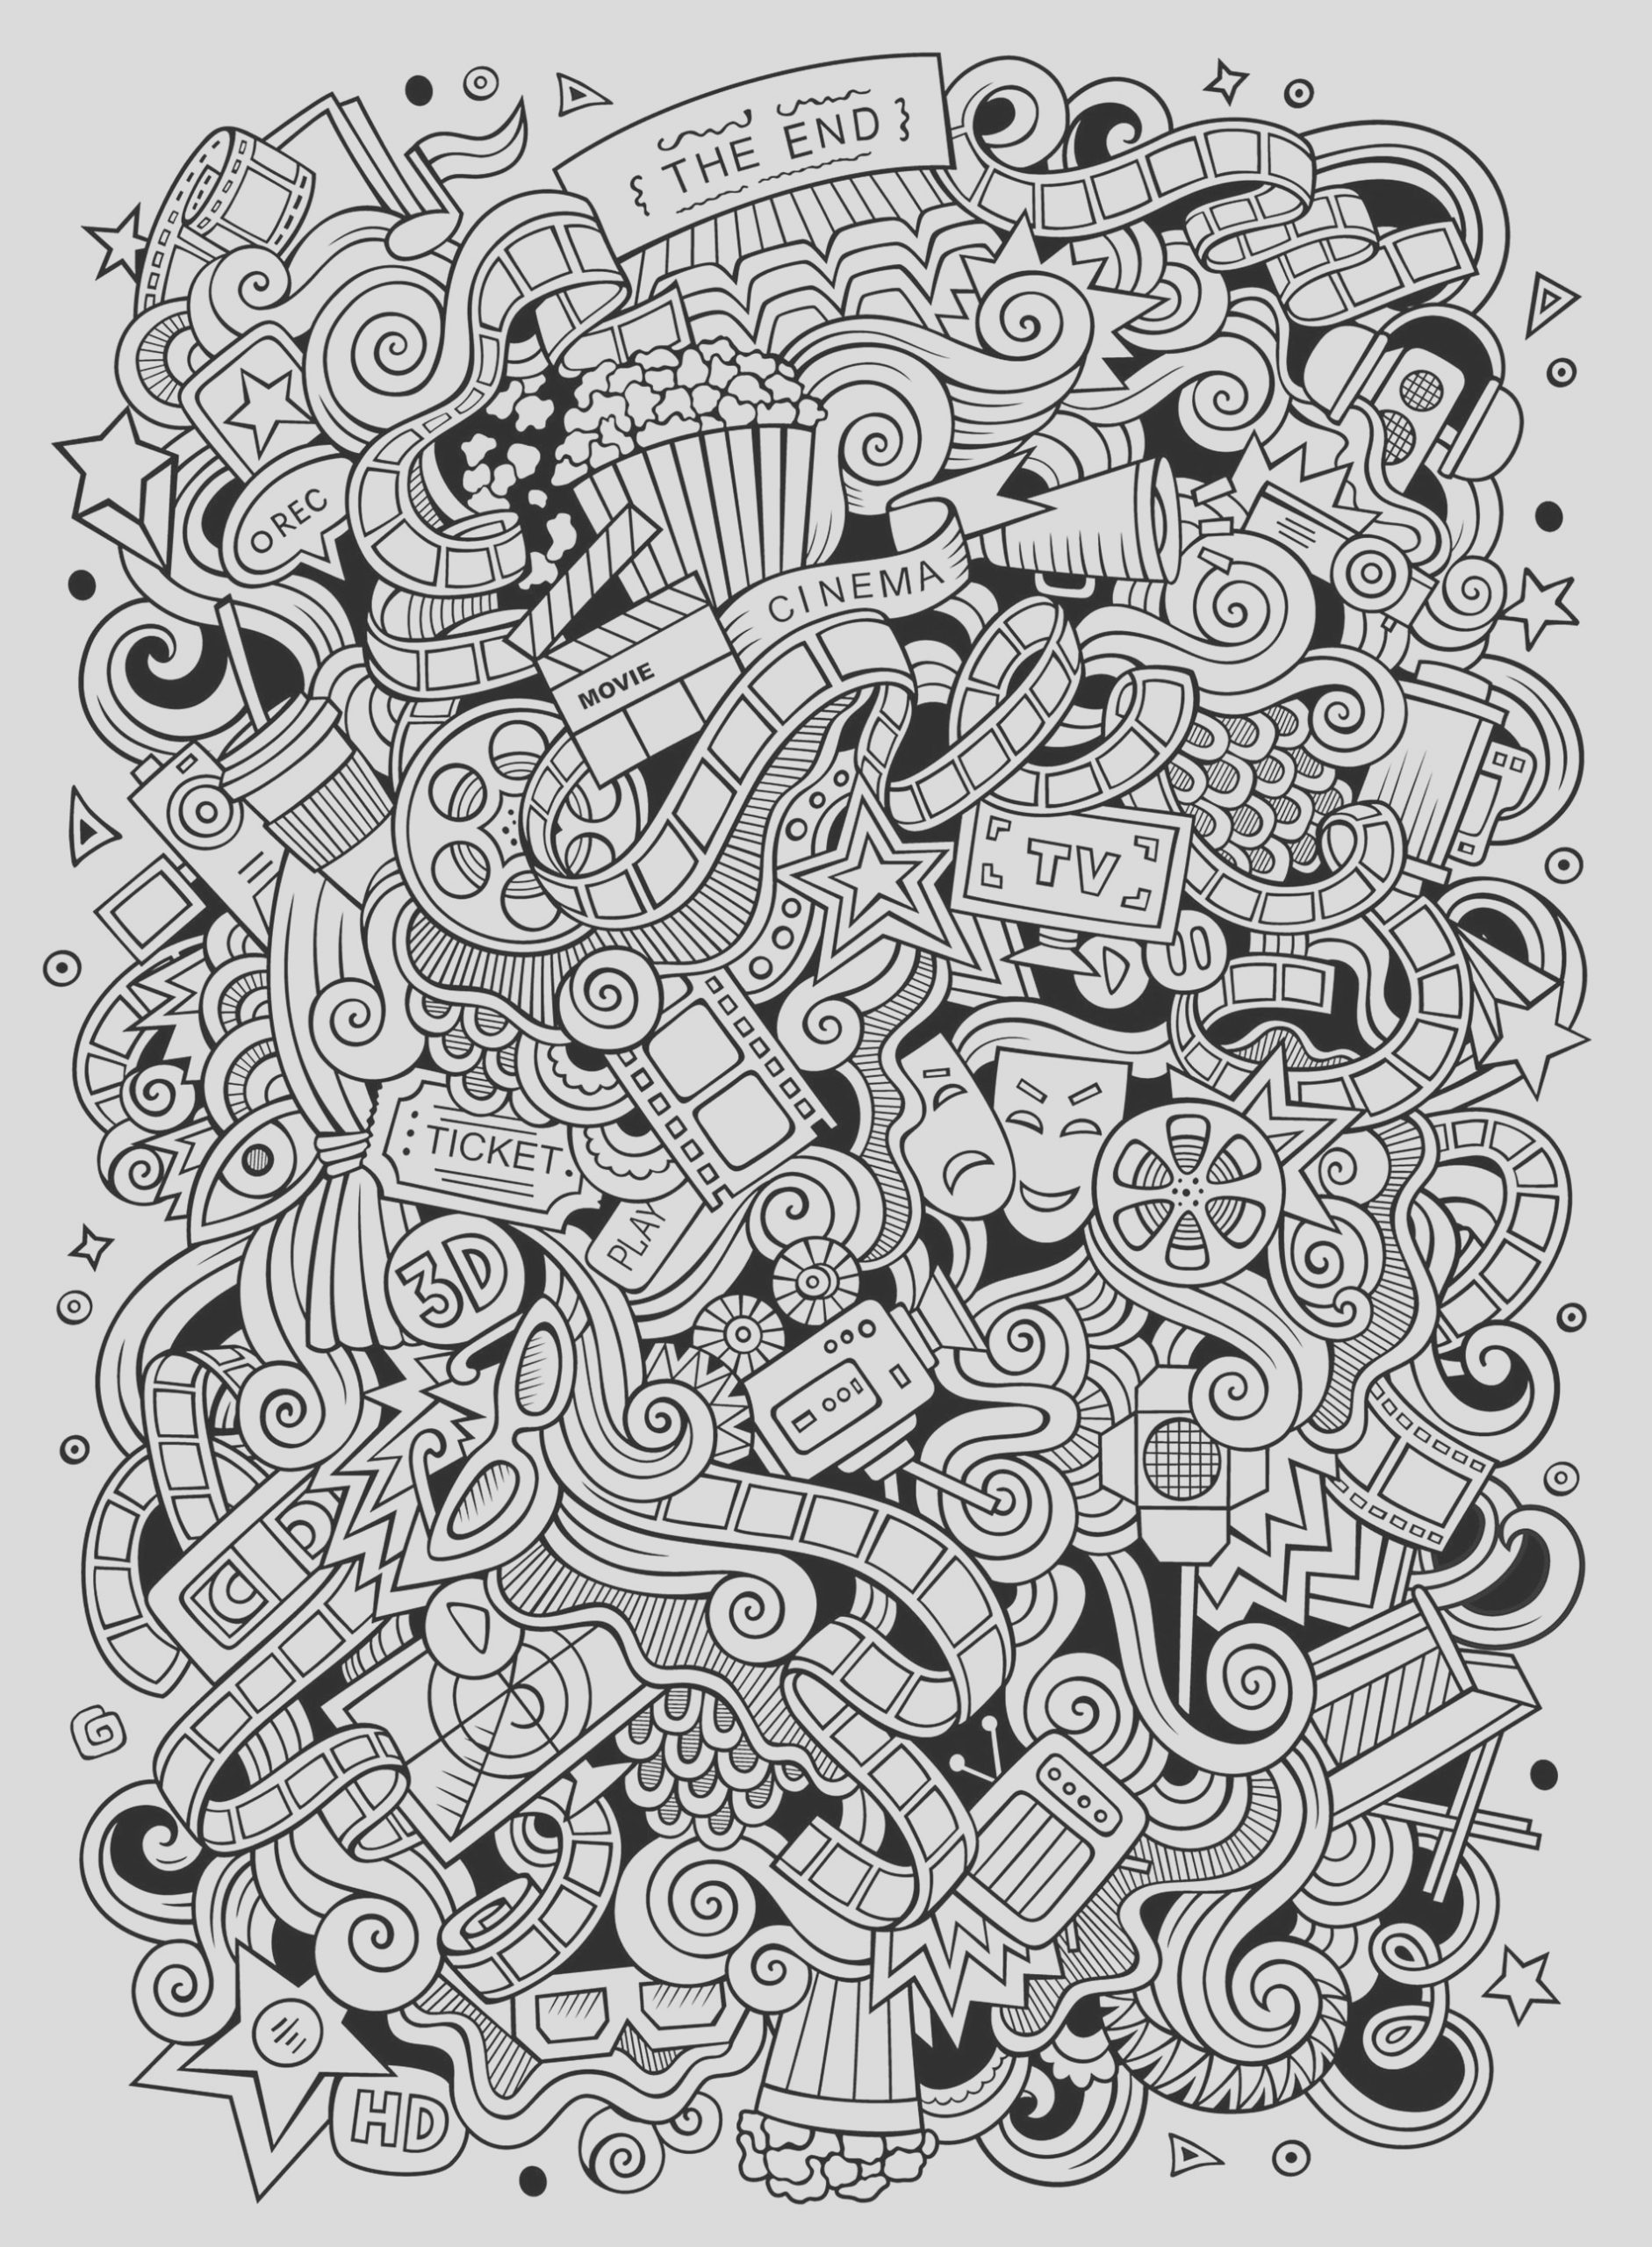 image=doodle art coloring pages for children doodle art 1